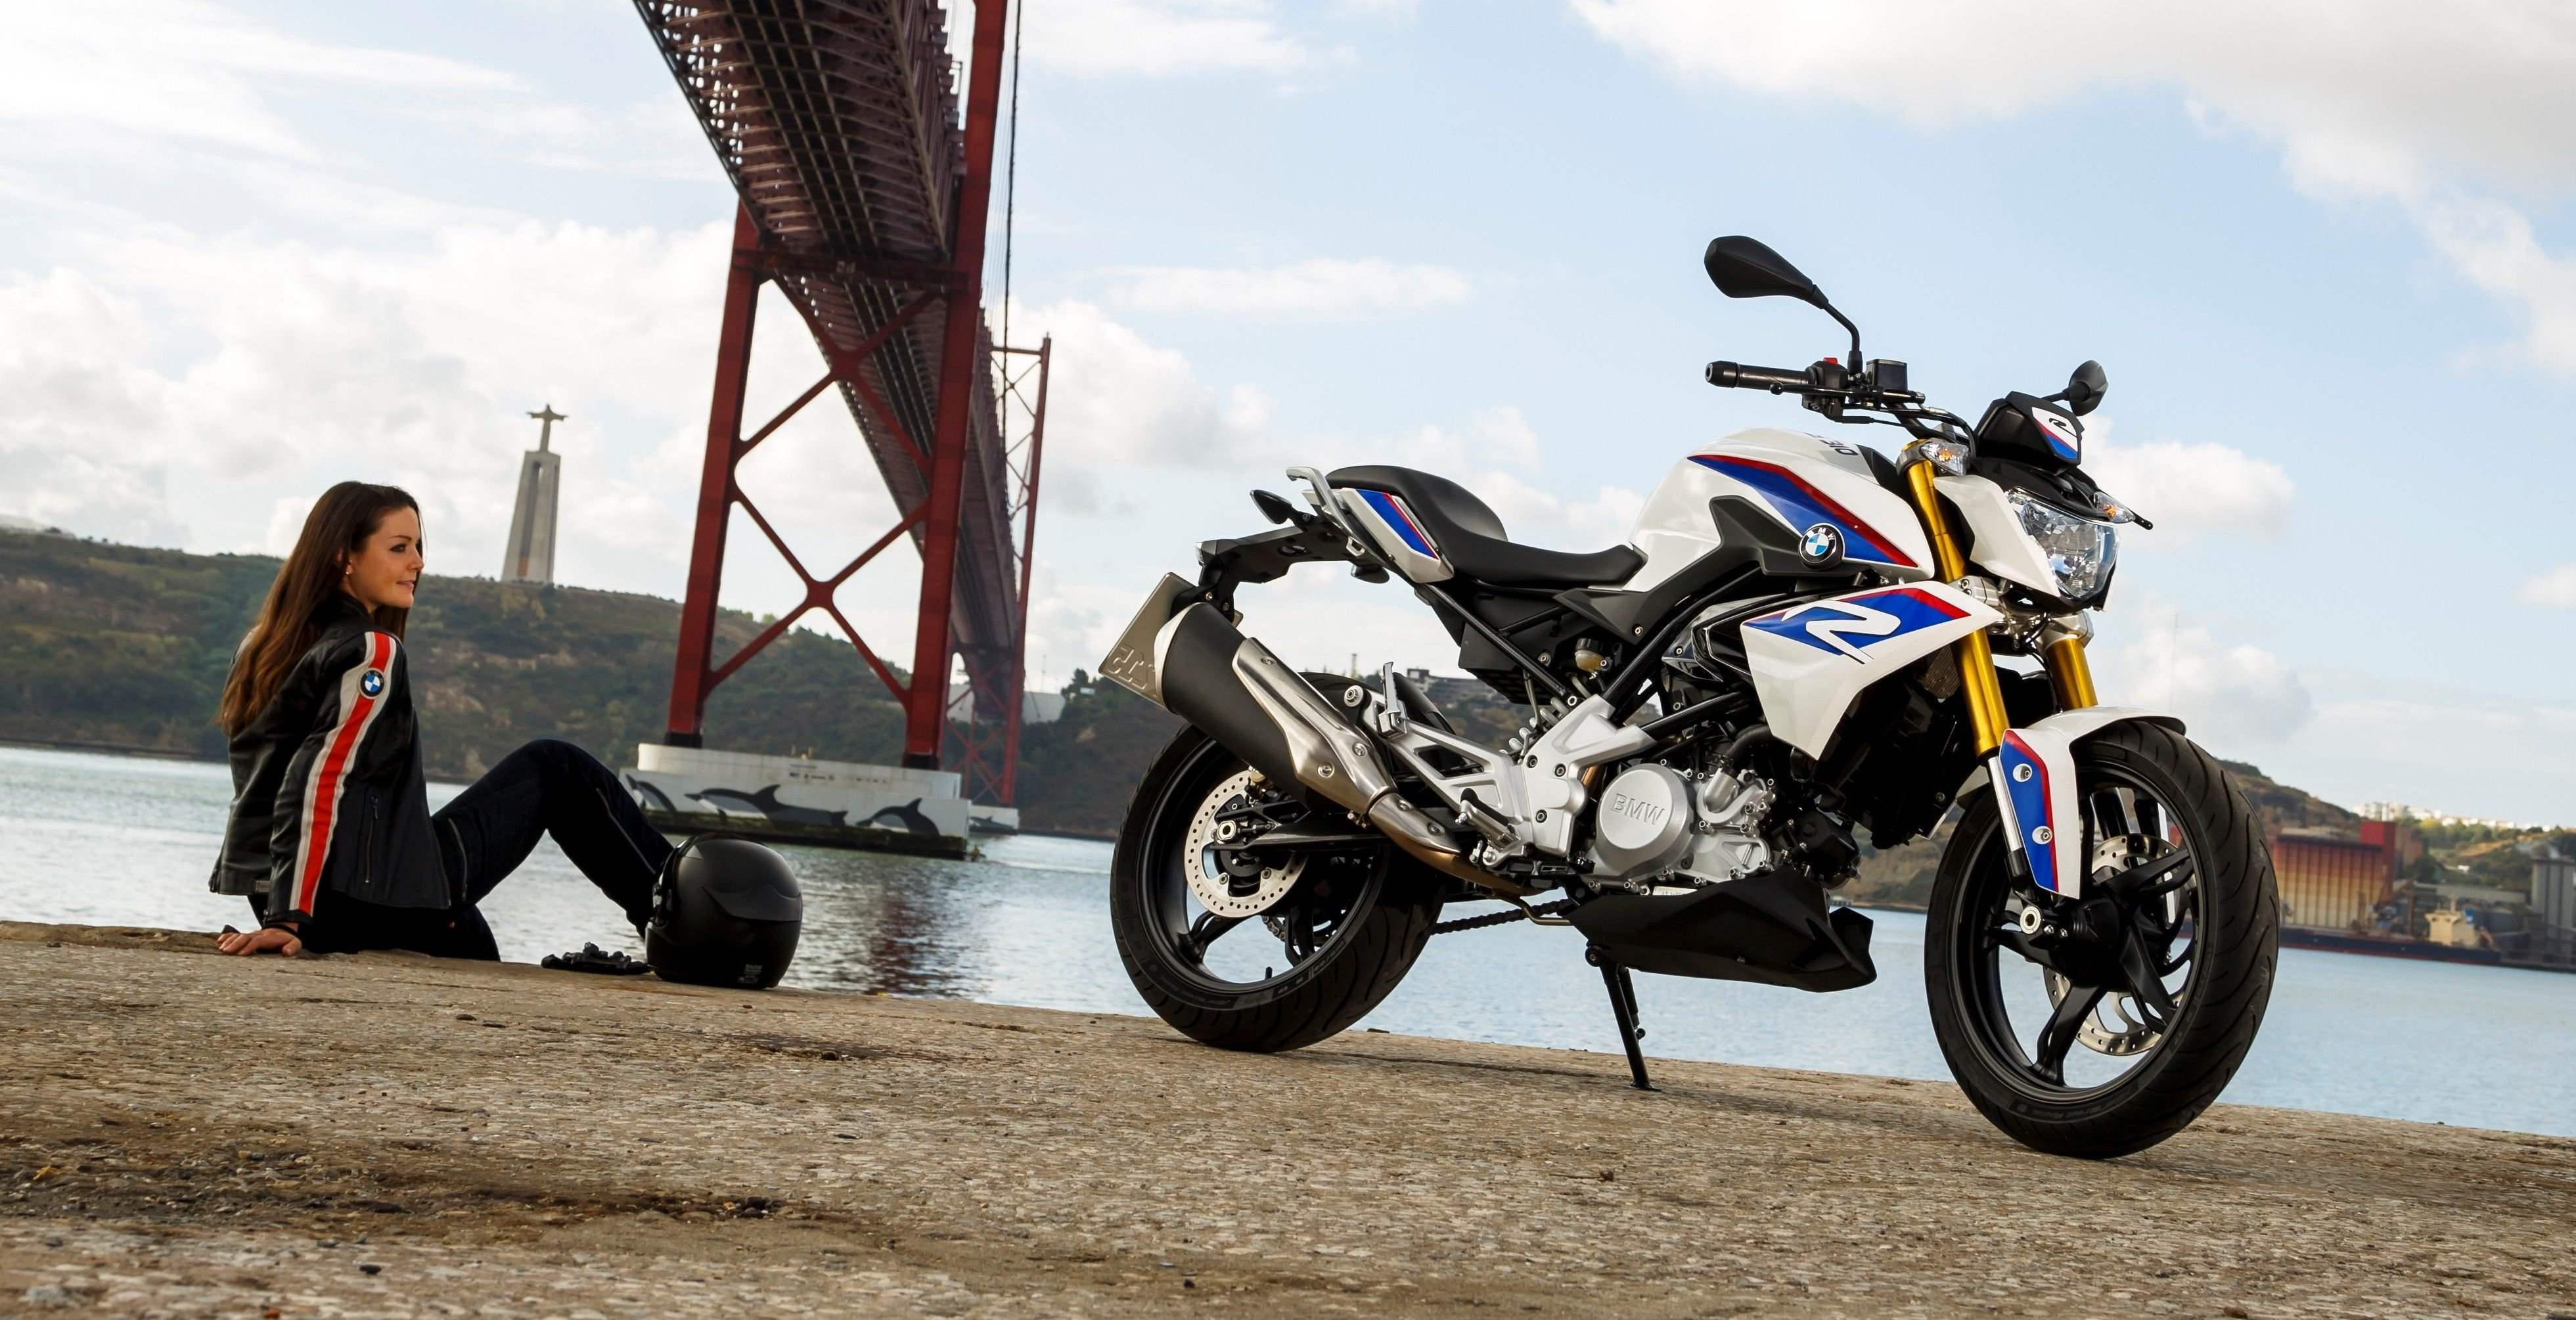 Latest Bikes Wallpapers Free Download New Latest Sports Hd Free Download